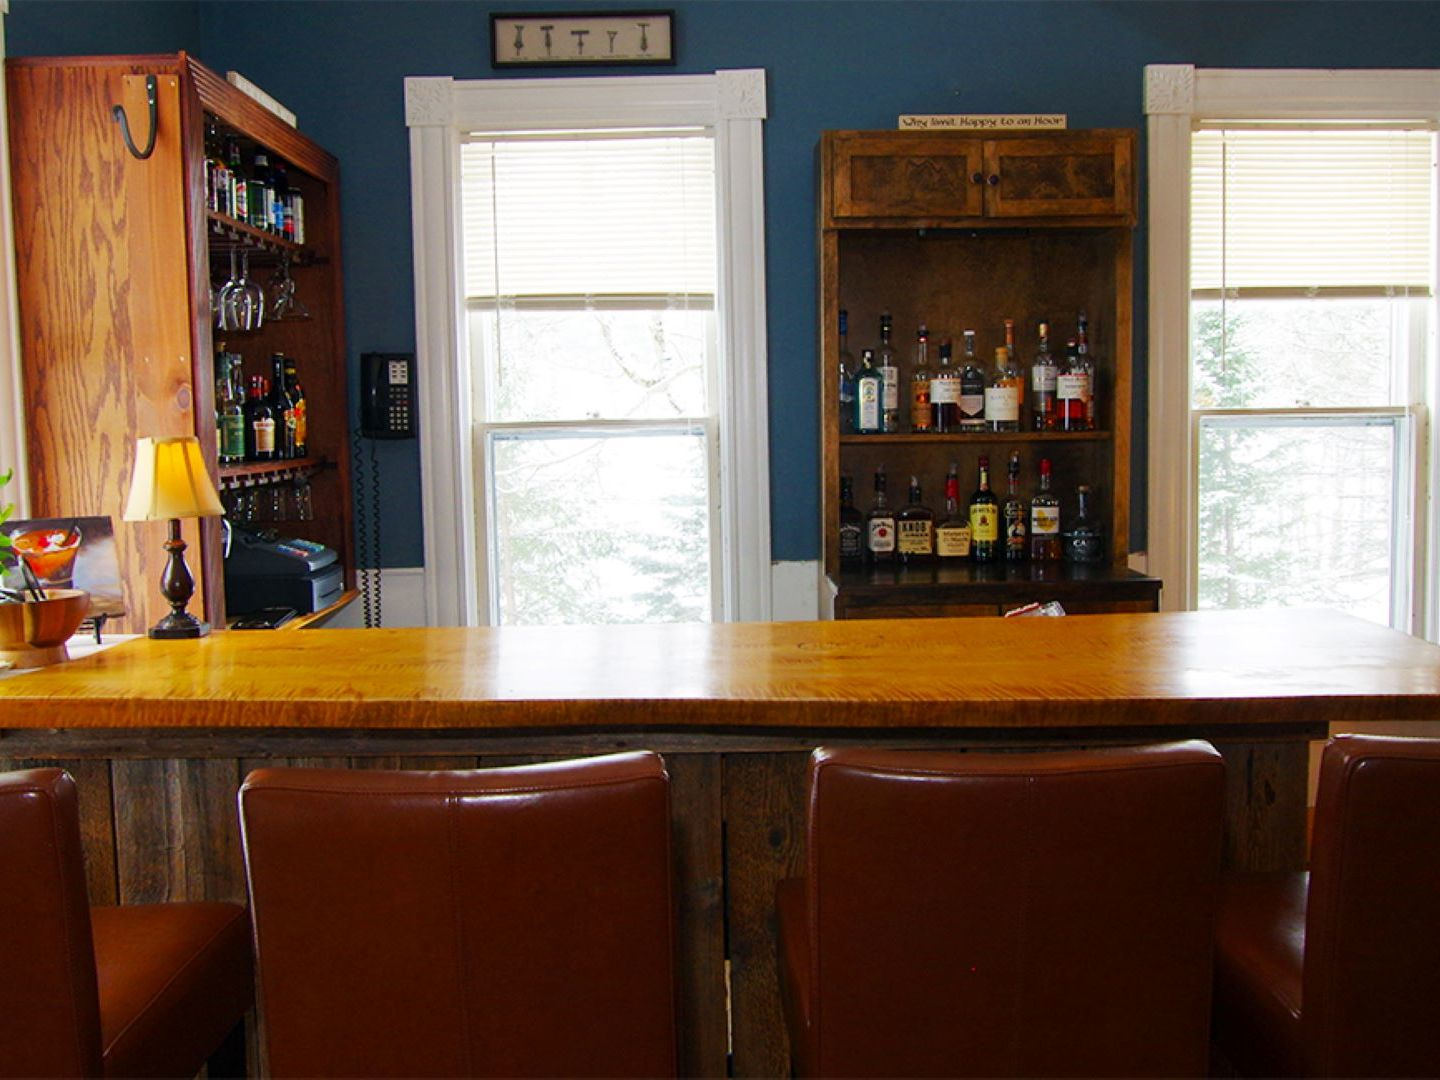 A kitchen with a large window at The Wilmington Inn.